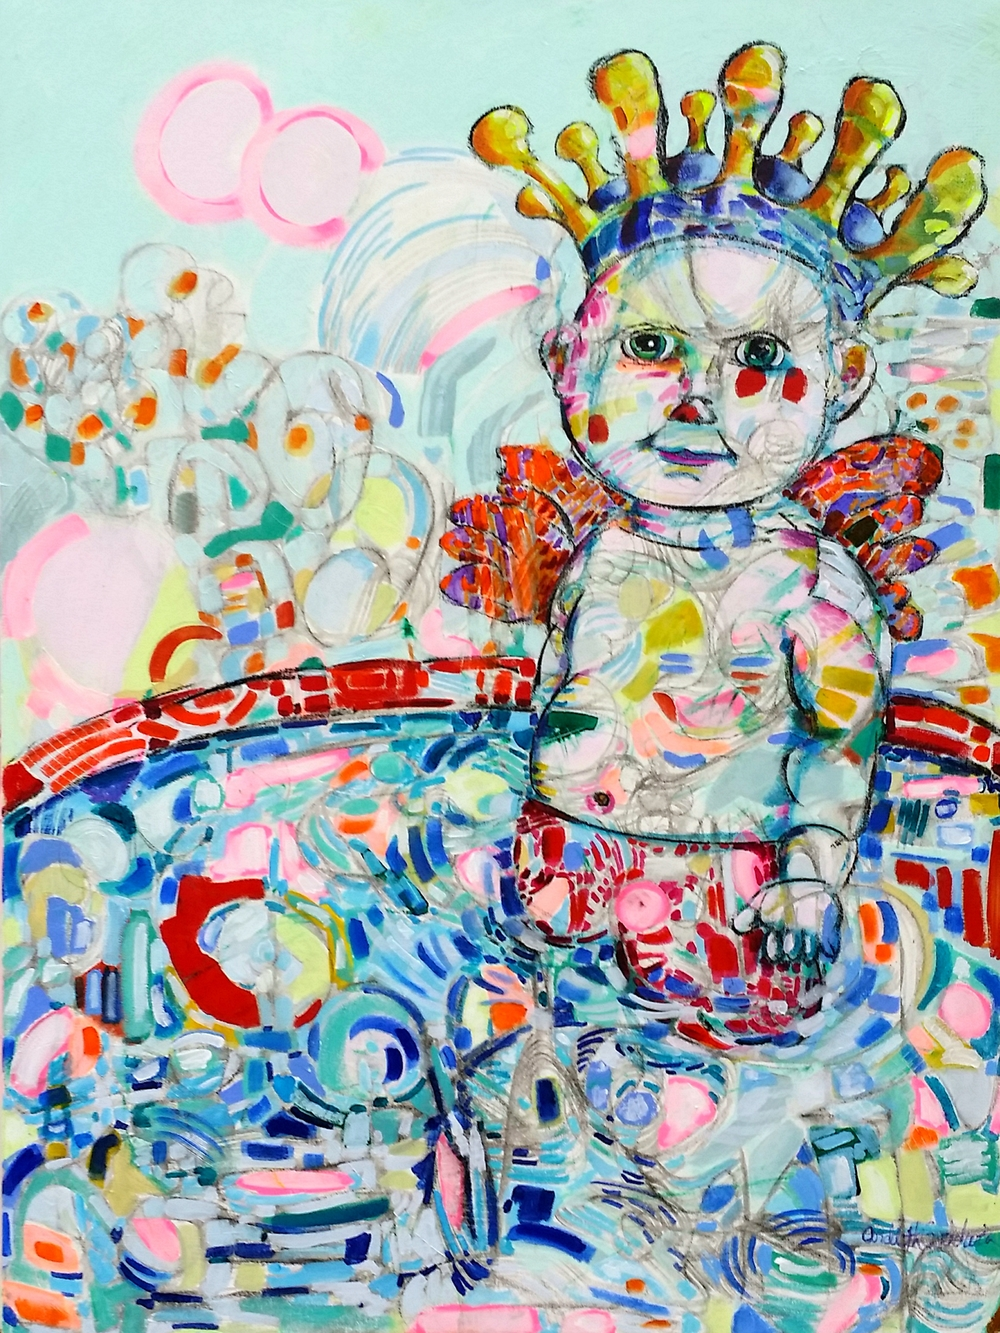 King BabyBaby III by Ardith Goodwin